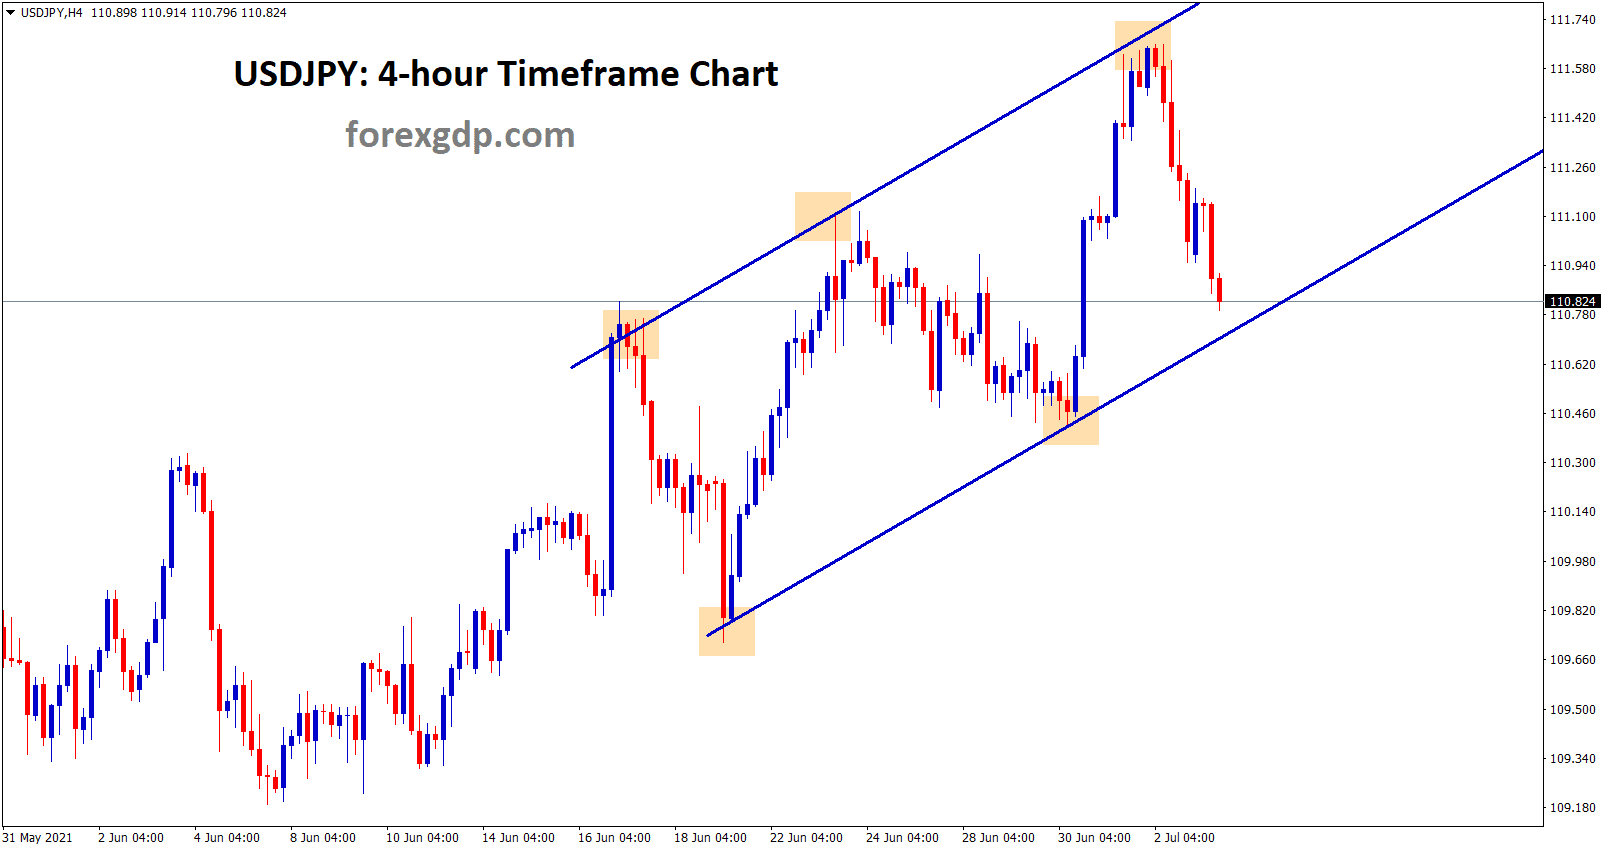 usdjpy moving in an uptrend line